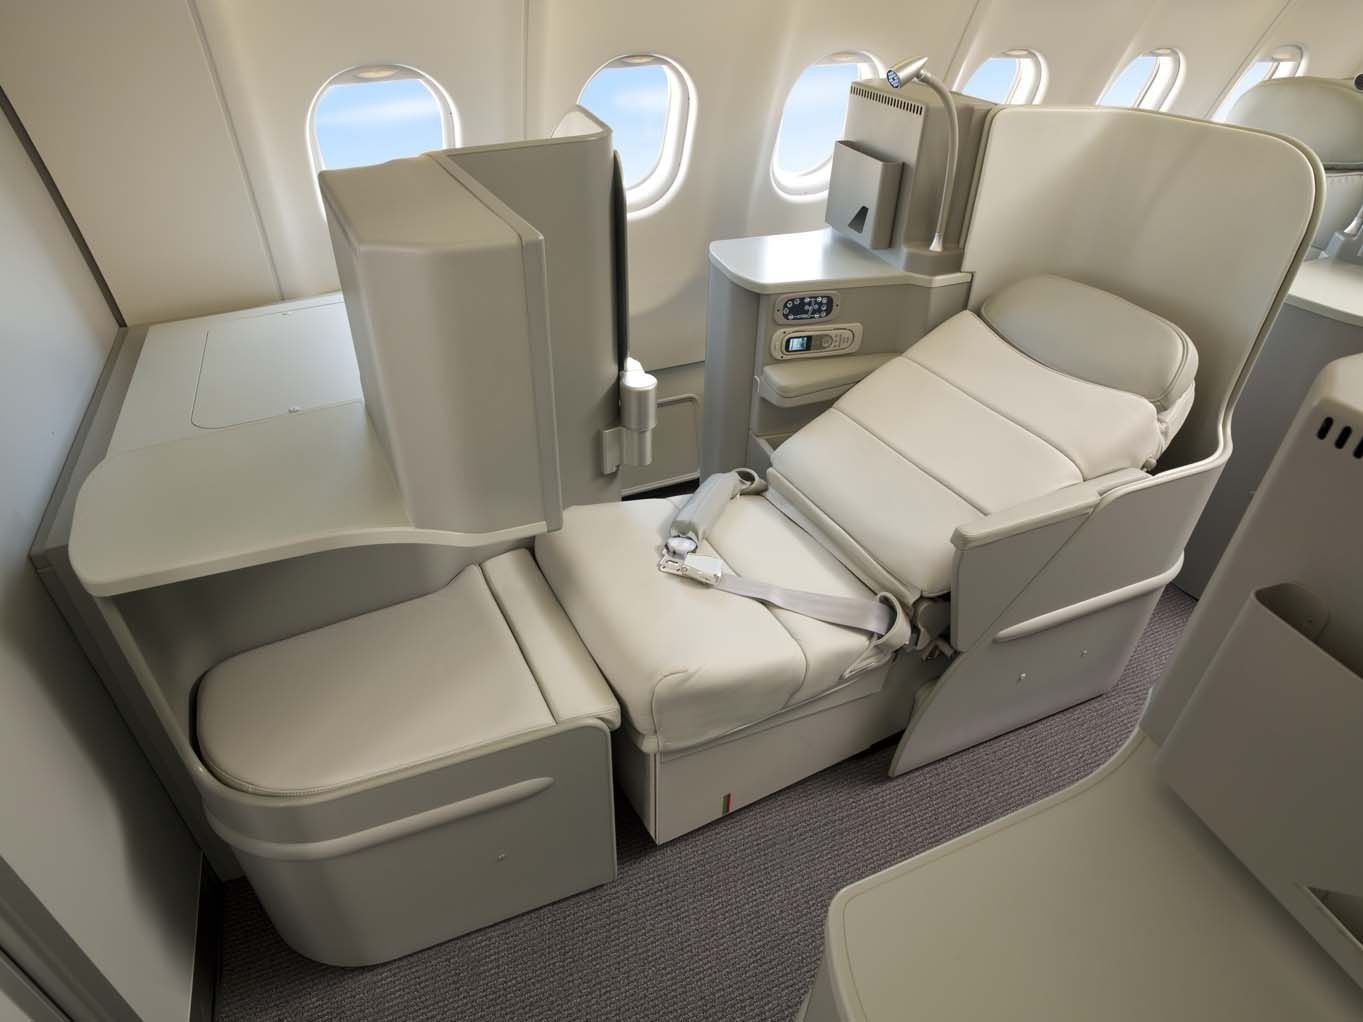 fly alitalia magnifica class to italy transfer amex points to delta rh pinterest com